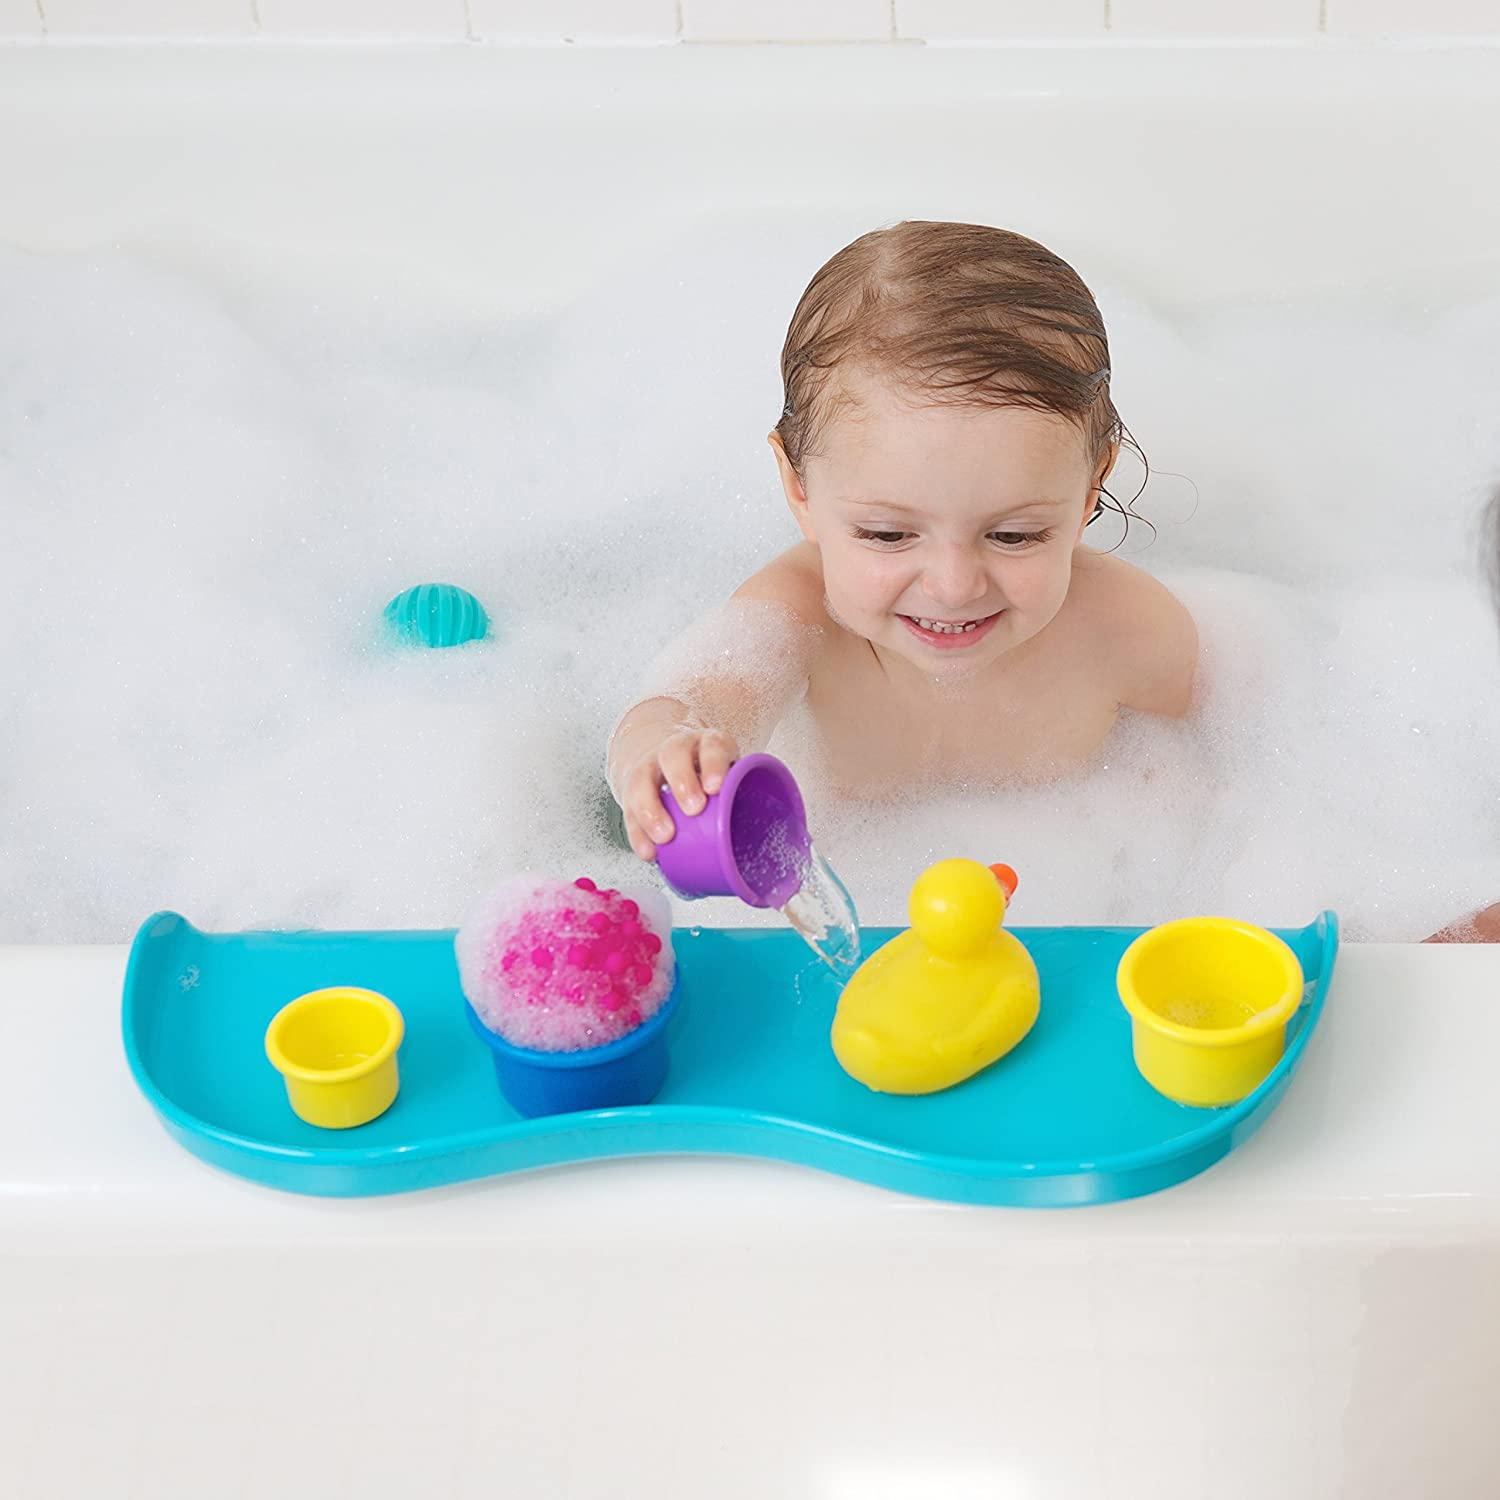 Amazon.com : Toddler Tub Shelf : Baby